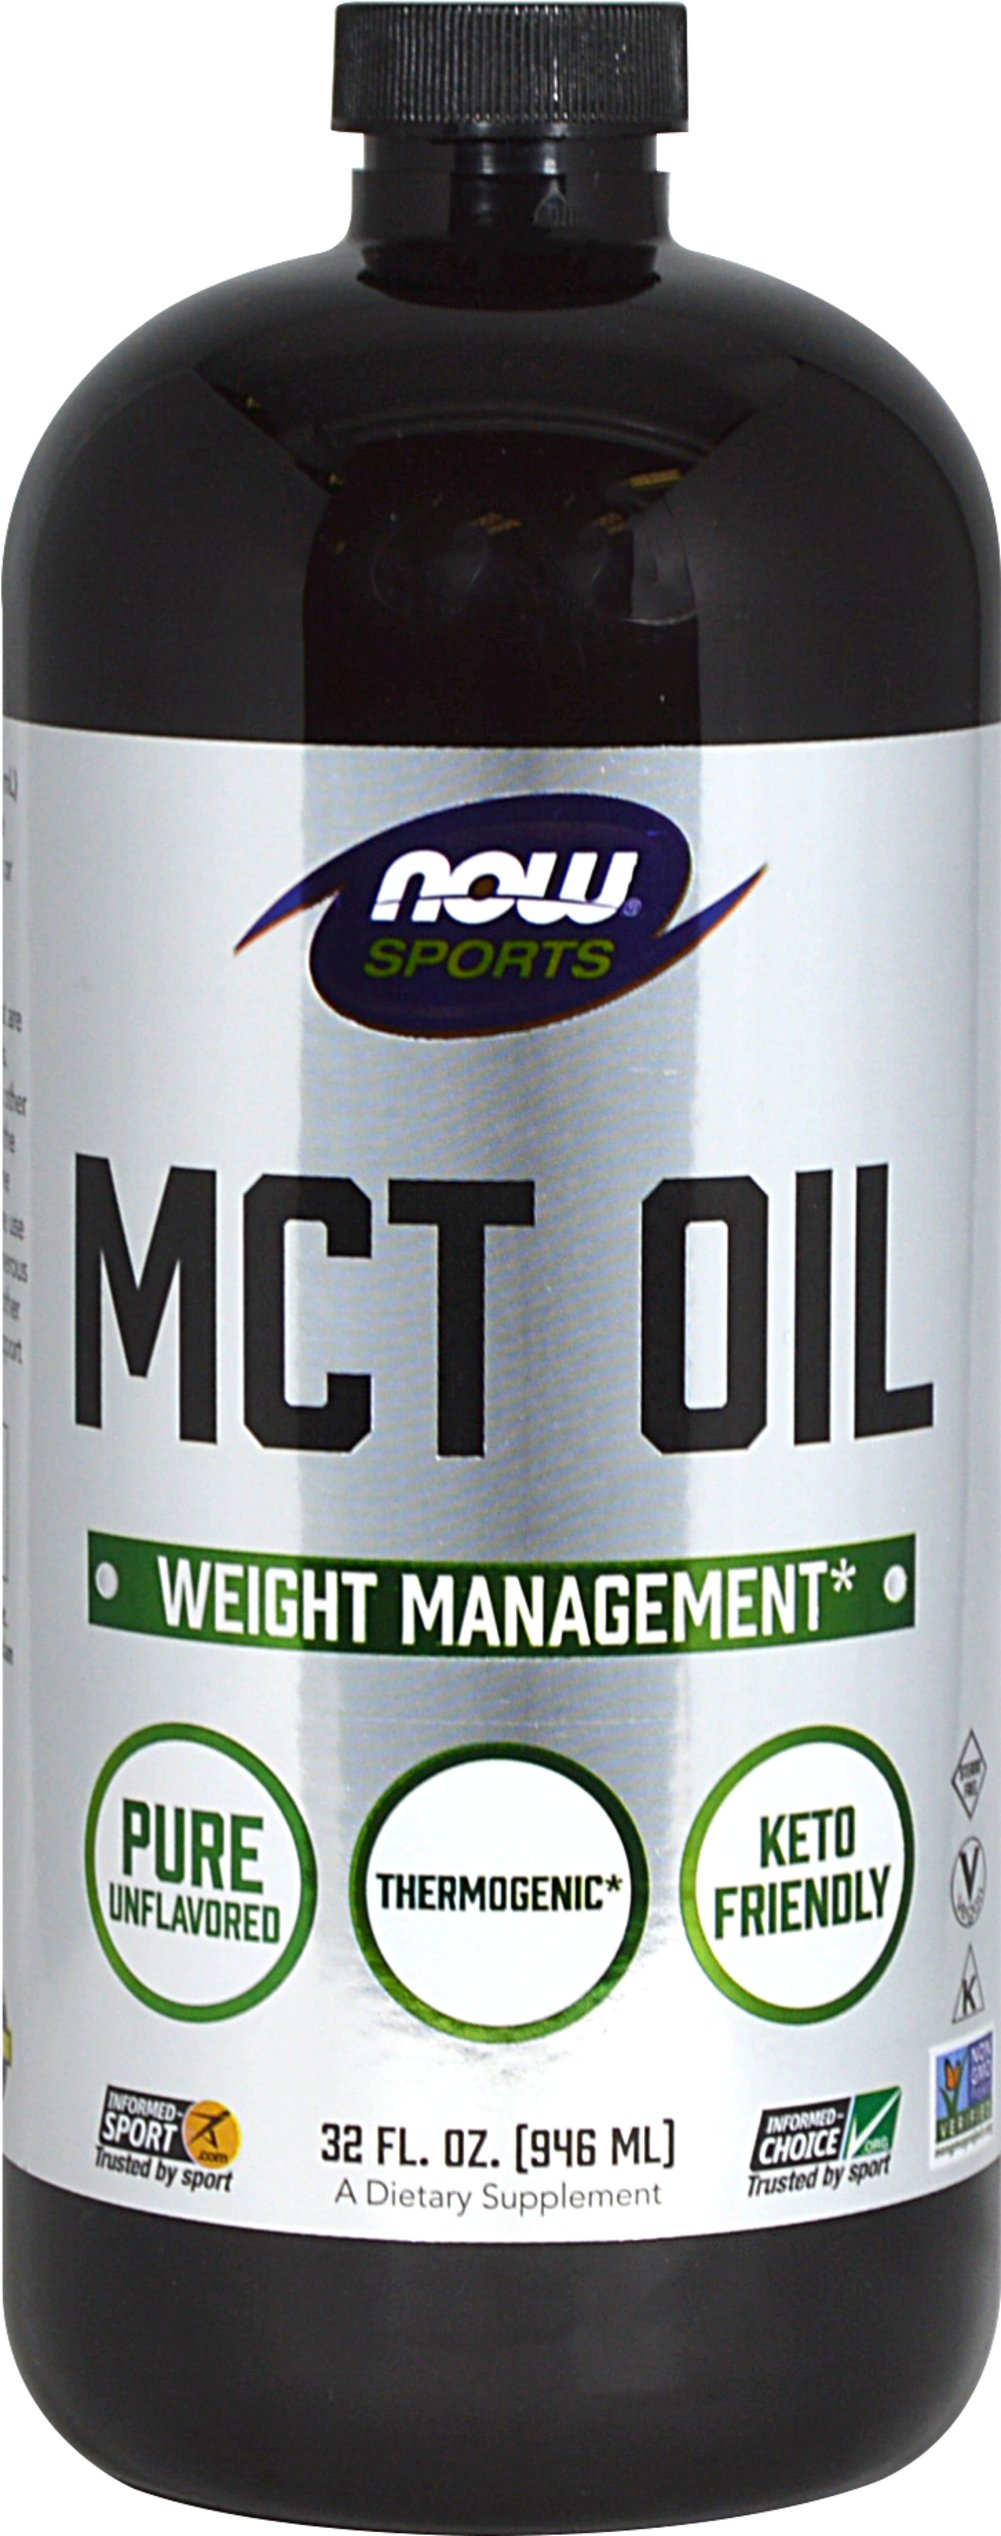 MCT Oil  32 fl oz Liquid  $16.99